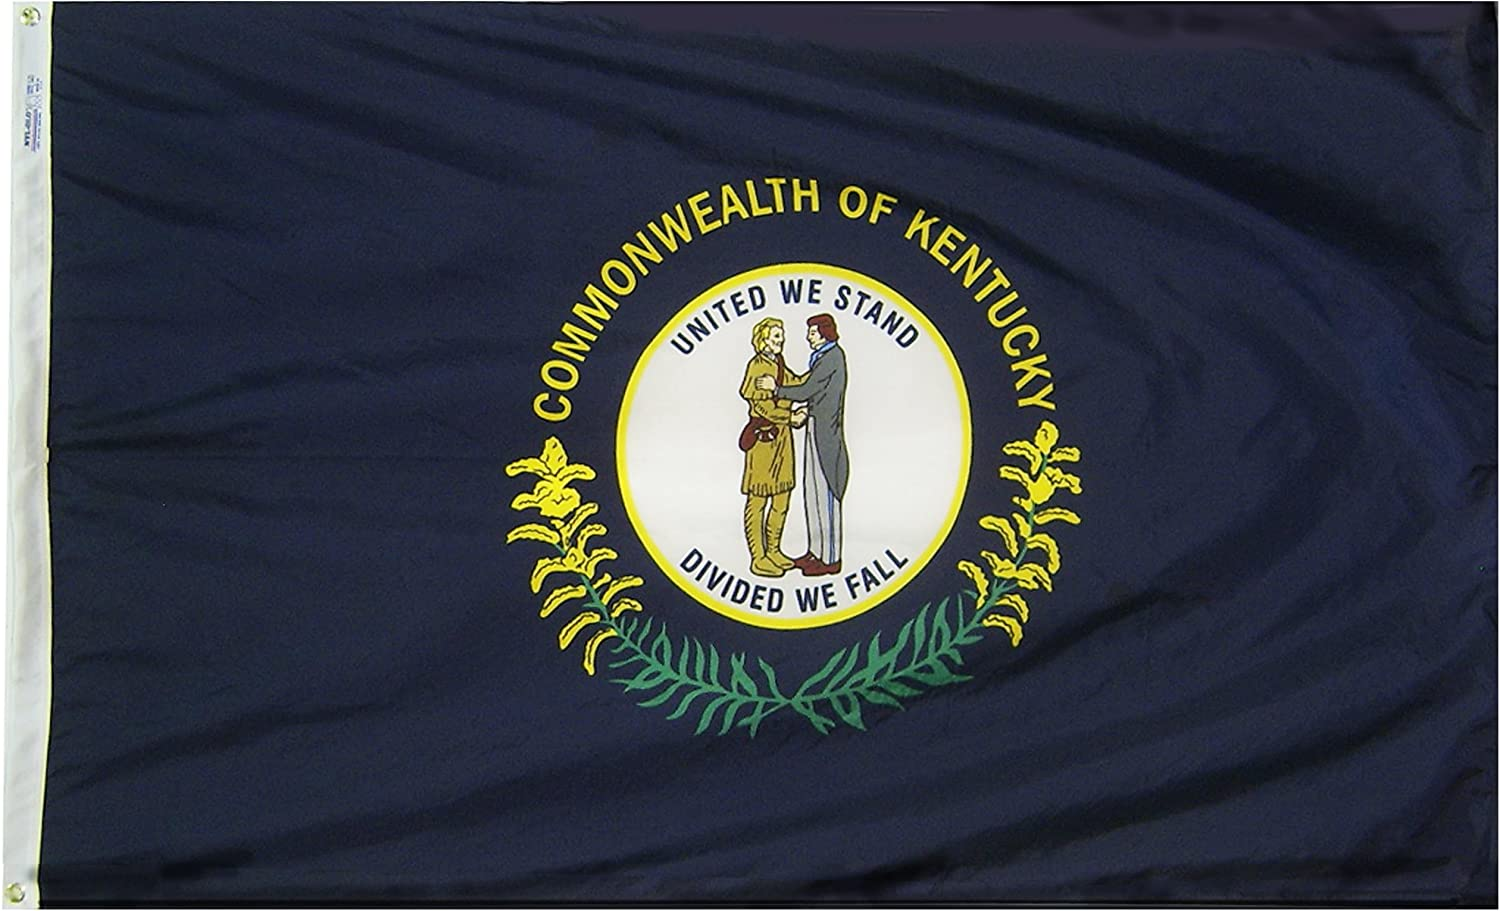 Annin Flagmakers Model 141960 Kentucky State Flag 3x5 ft. Nylon SolarGuard Nyl-Glo 100% Made in USA to Official State Design Specifications.